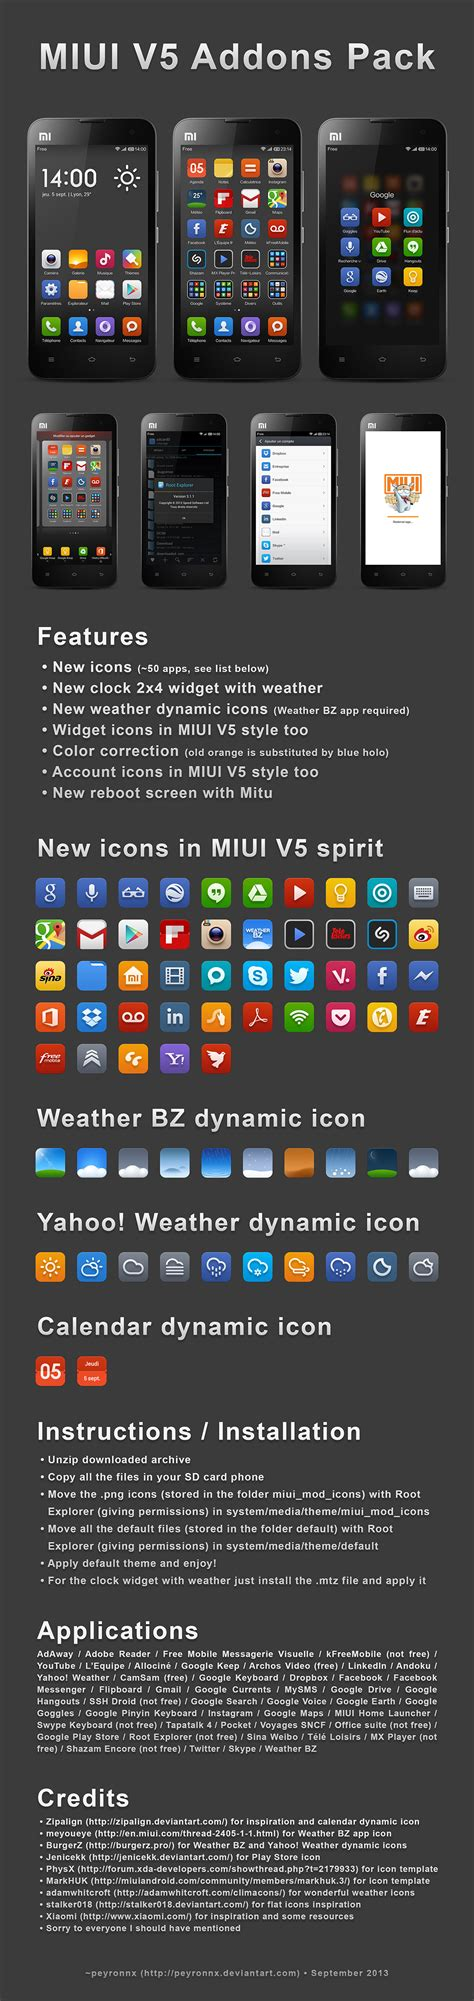 miui themes pack download miui v5 addons pack 1 0 by peyronnx on deviantart